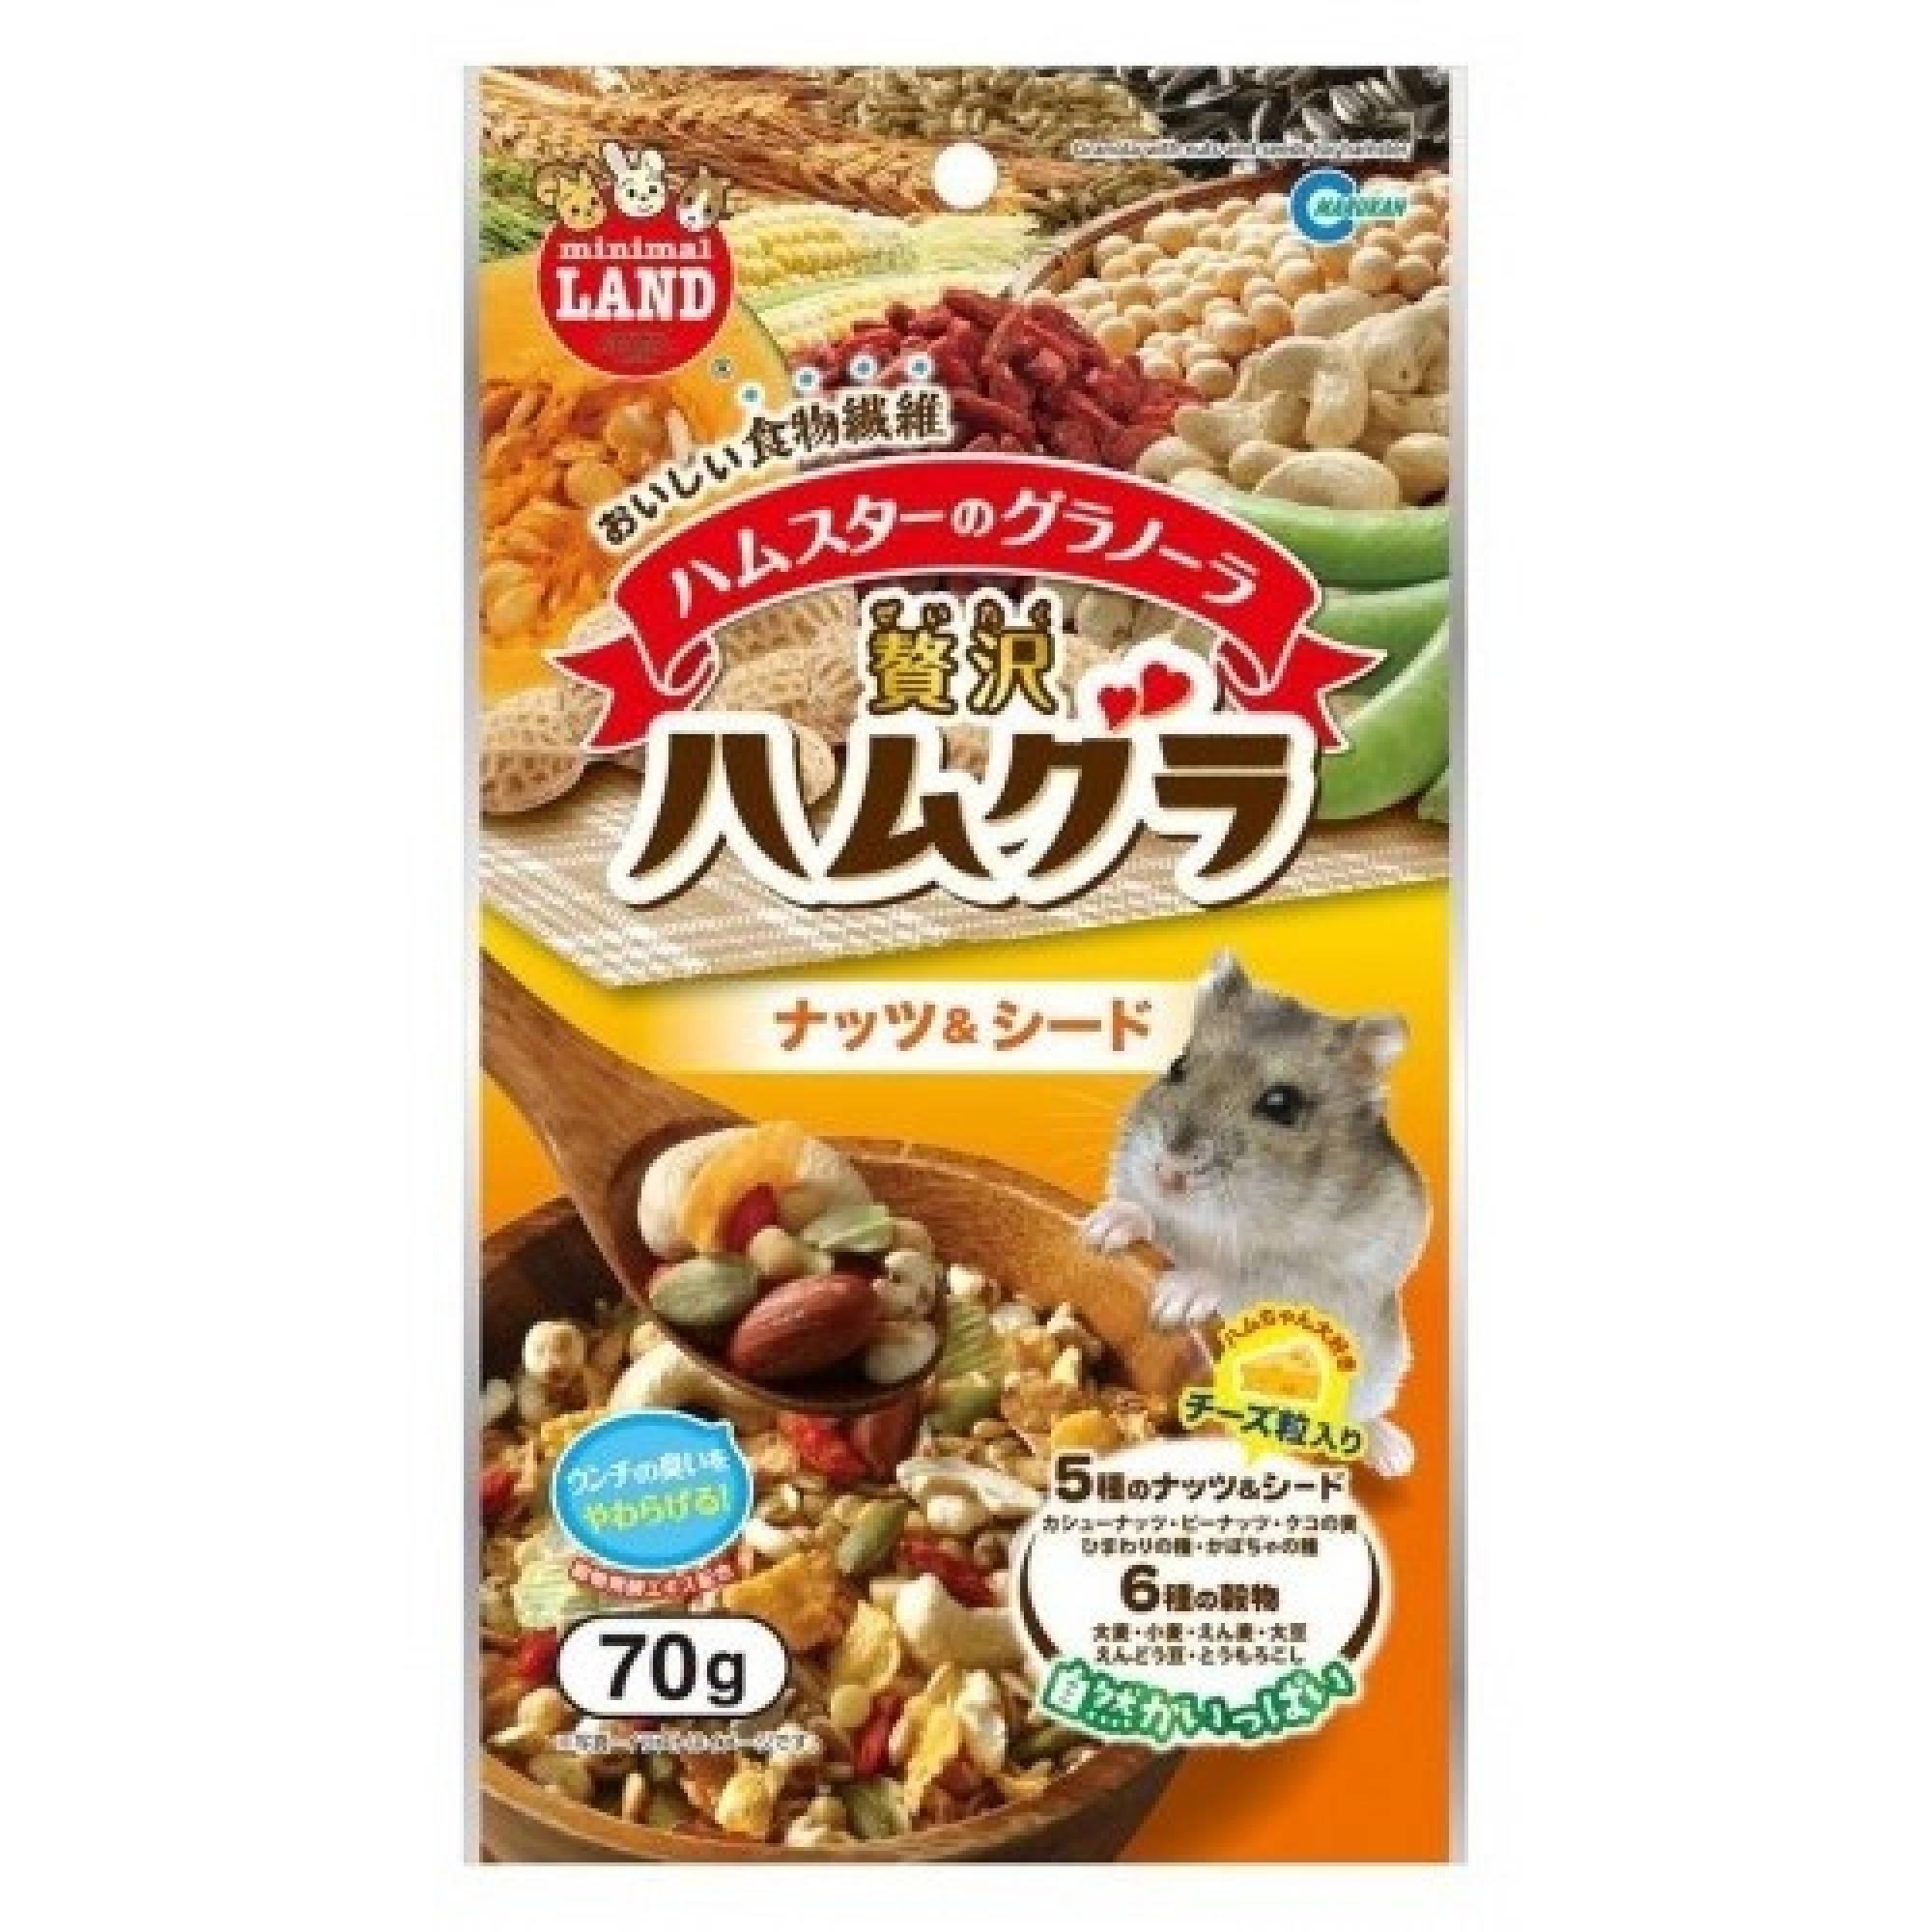 Marukan ML56 - Granola with Nuts & Seeds For Hamster 70g